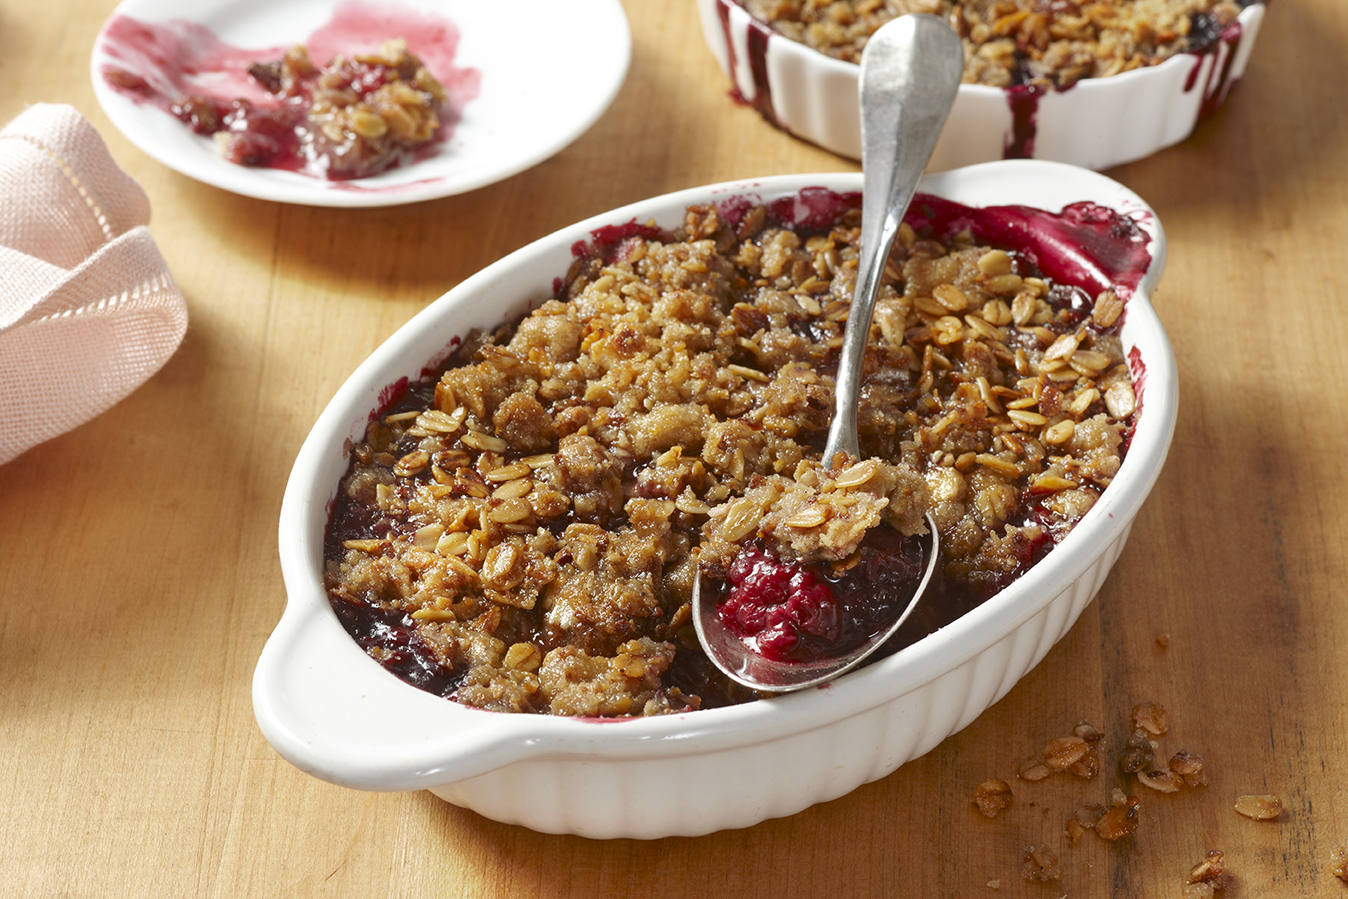 Granola Mixed Berry Crisp